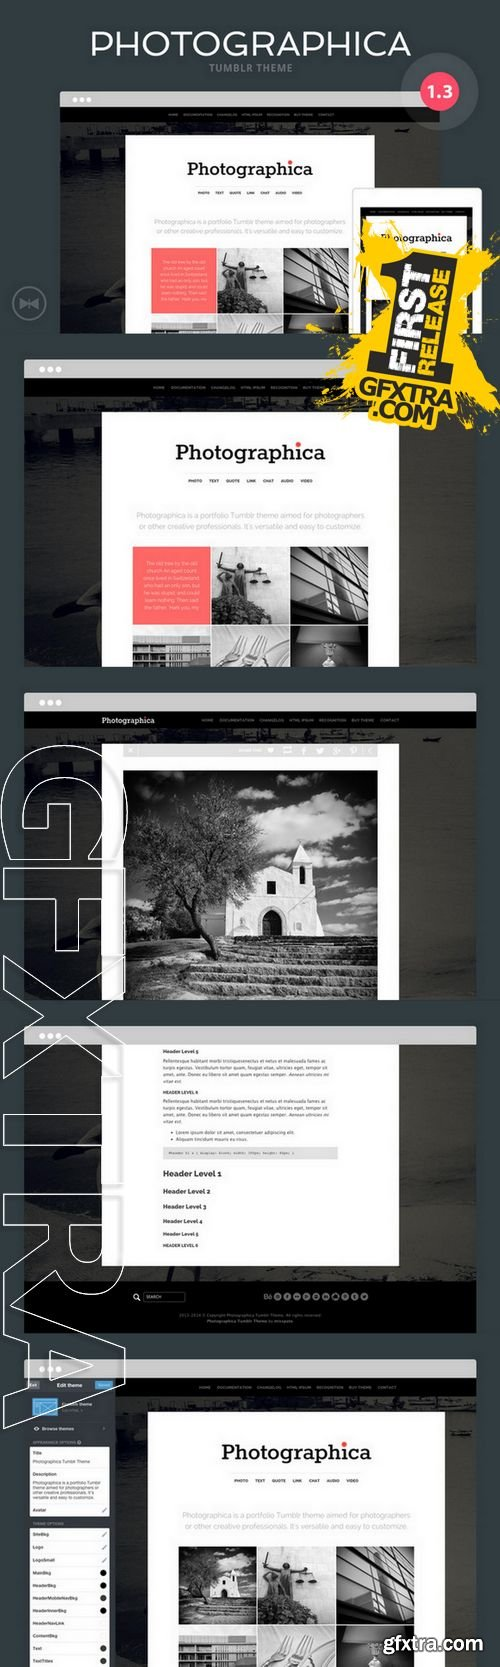 Photographica Tumblr Theme - CM 104908